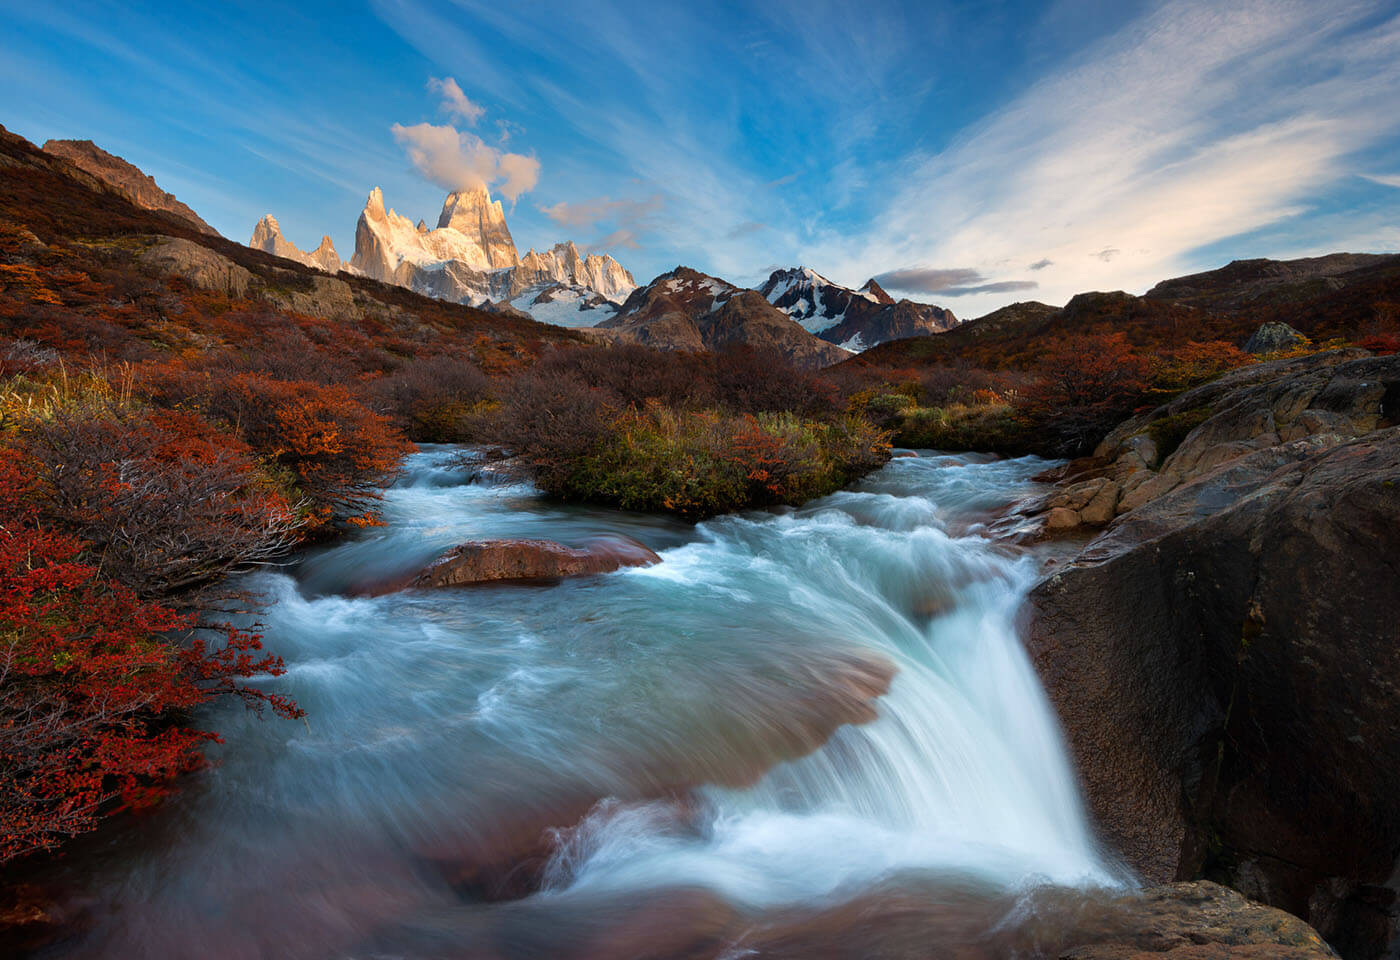 Landscape image of Patagonia